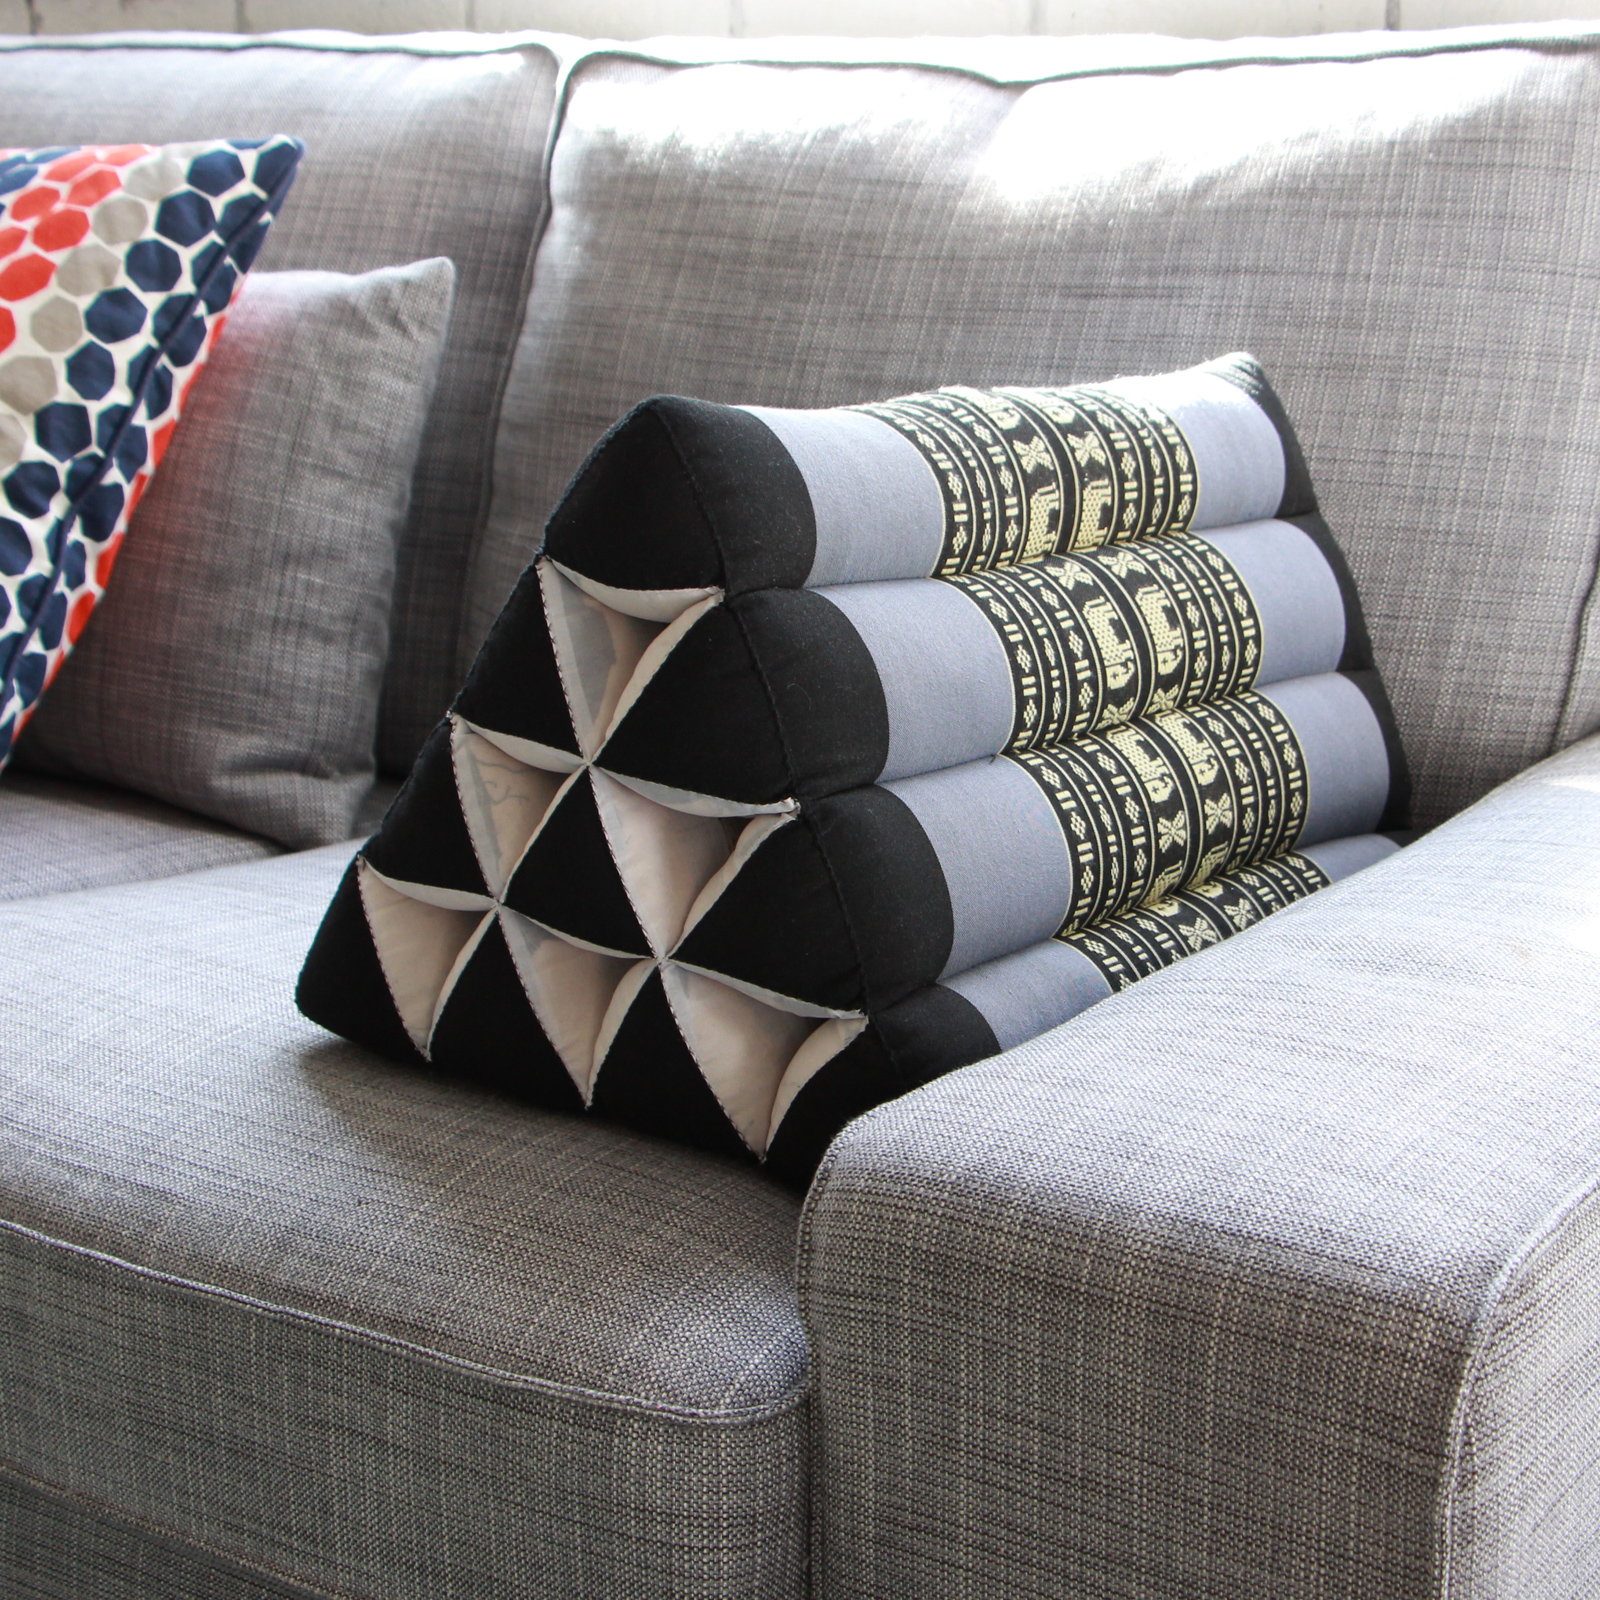 Image of: Triangle Pillow Decorative